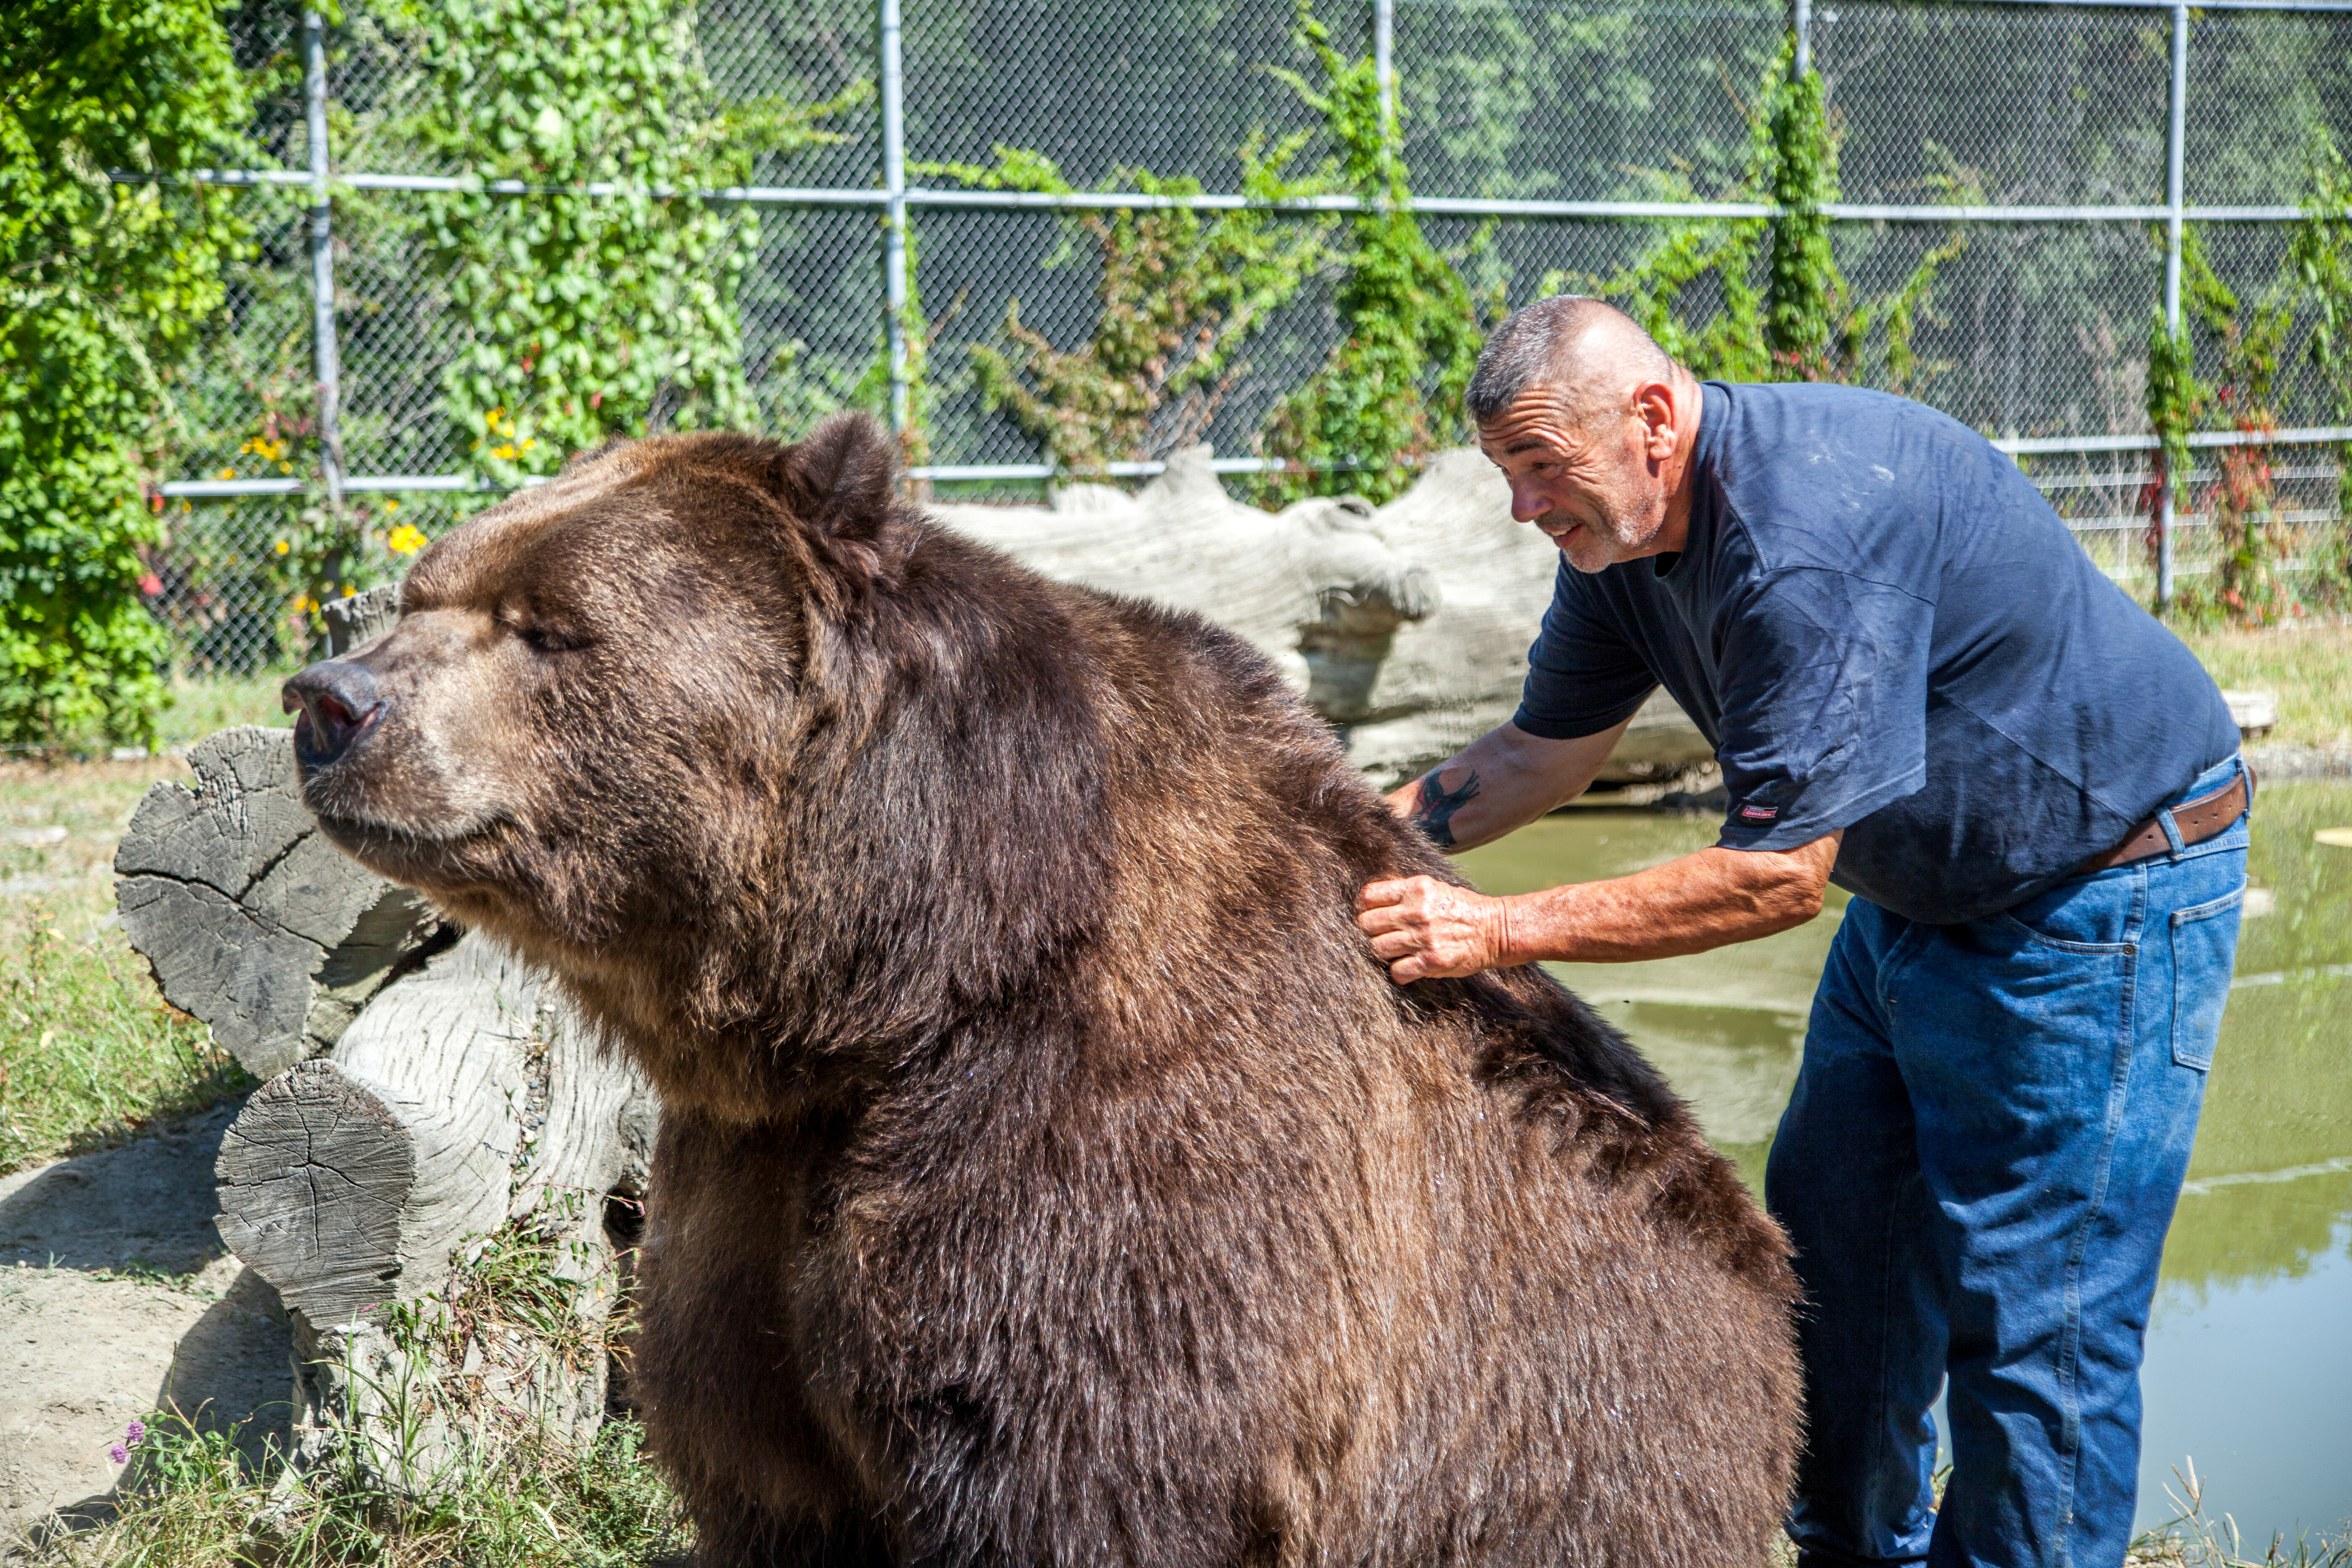 Jim Kowalczik scratching the back of 22-year-old Kodiak bear Jimbo in the bear's enclosure at the Orphaned Wildlife Center in Otisville on Sept. 7, 2016. (James Smith)